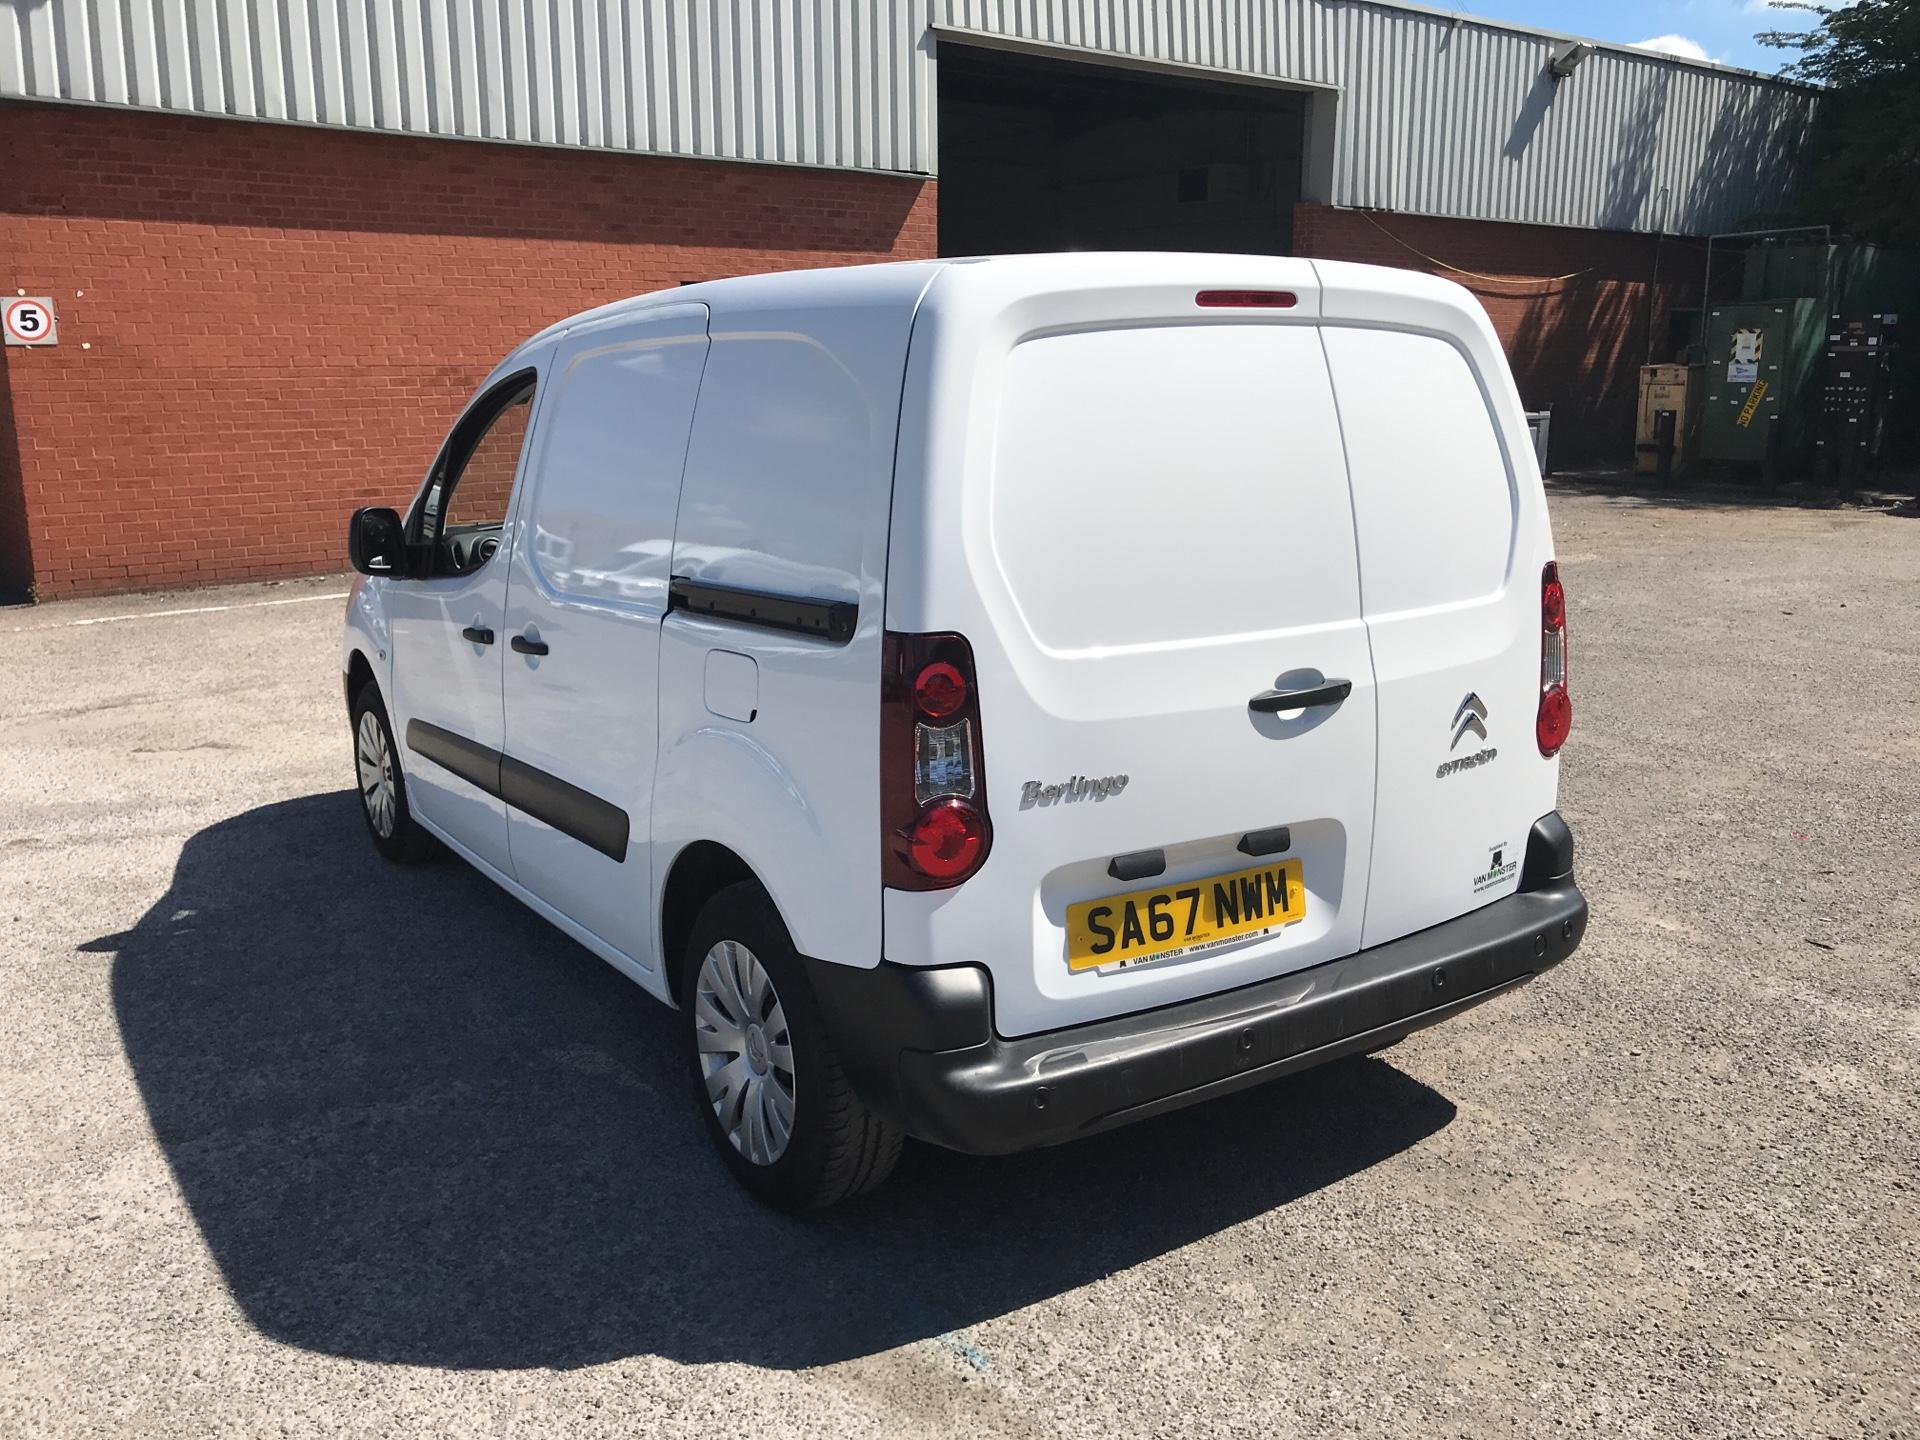 2017 Citroen Berlingo L1 DIESEL 1.6 BLUE HDI 625KG ENTERPRISE 75PS EURO 6 (SA67NWM) Image 5